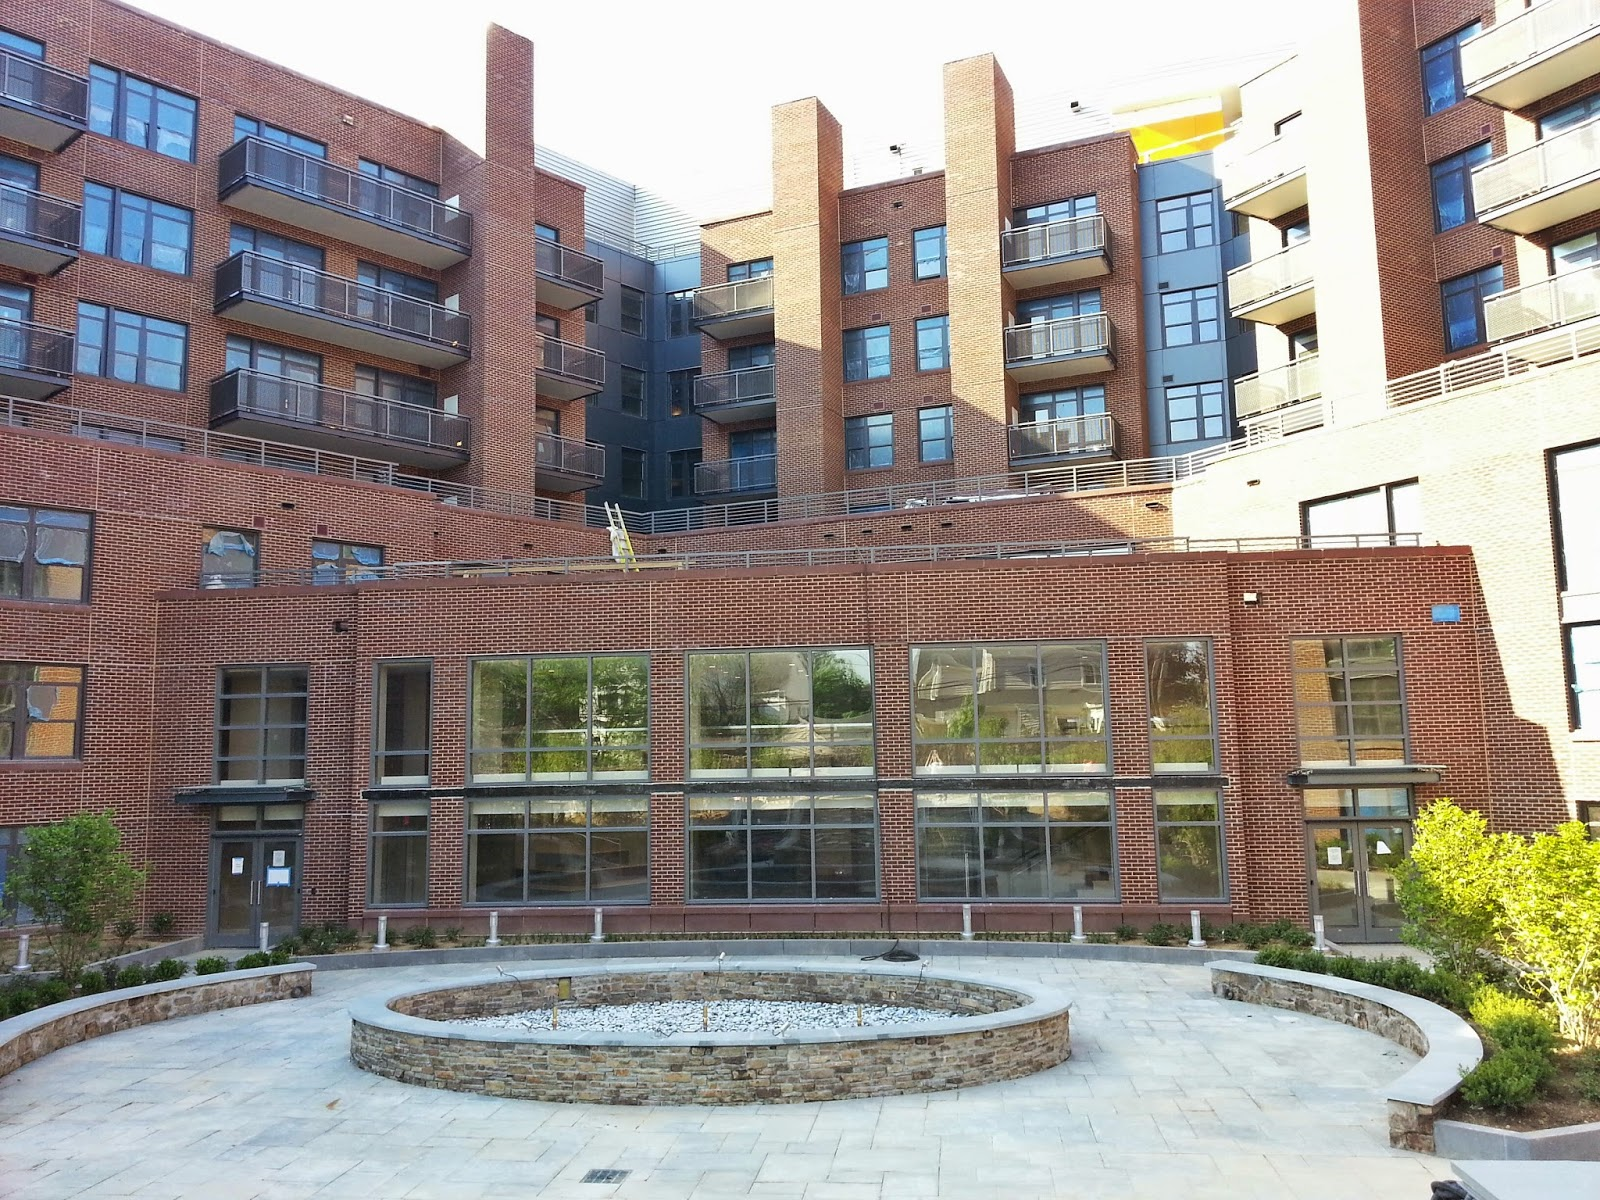 Lovely Hereu0027s A Sneak Peek At The Park/plaza Common Area Behind The Flats At  Bethesda Avenue Luxury Apartments. Some Vegetation Is In Place, As Well As  Most Of The ...